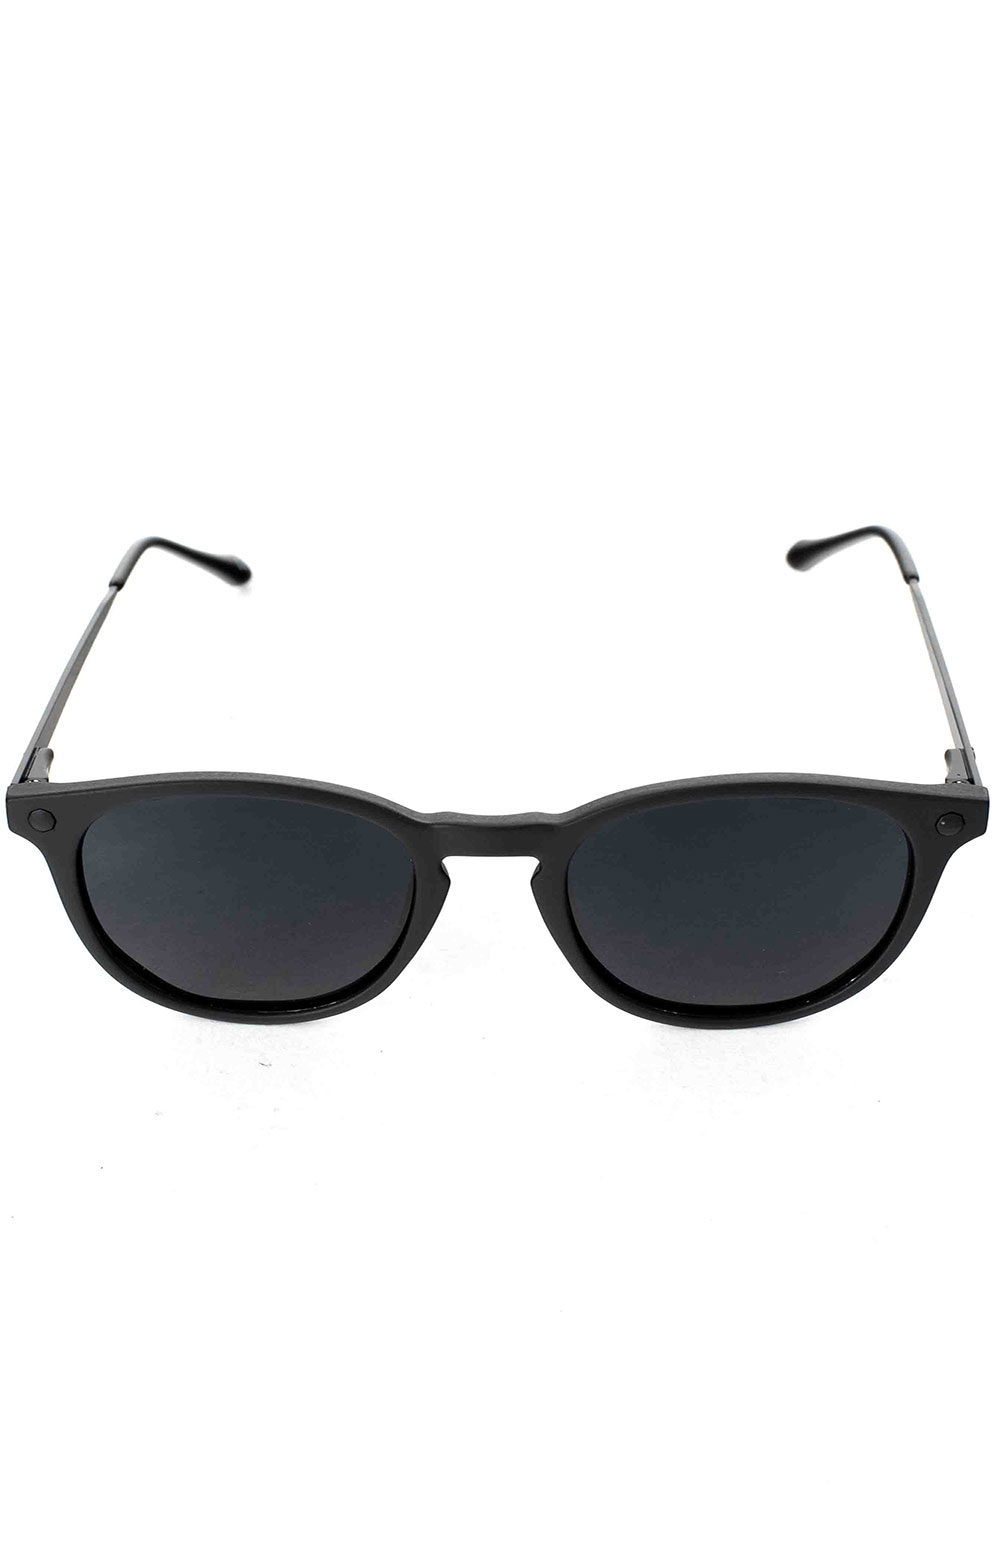 Aria Sunglasses - Matte Back Polarized 2